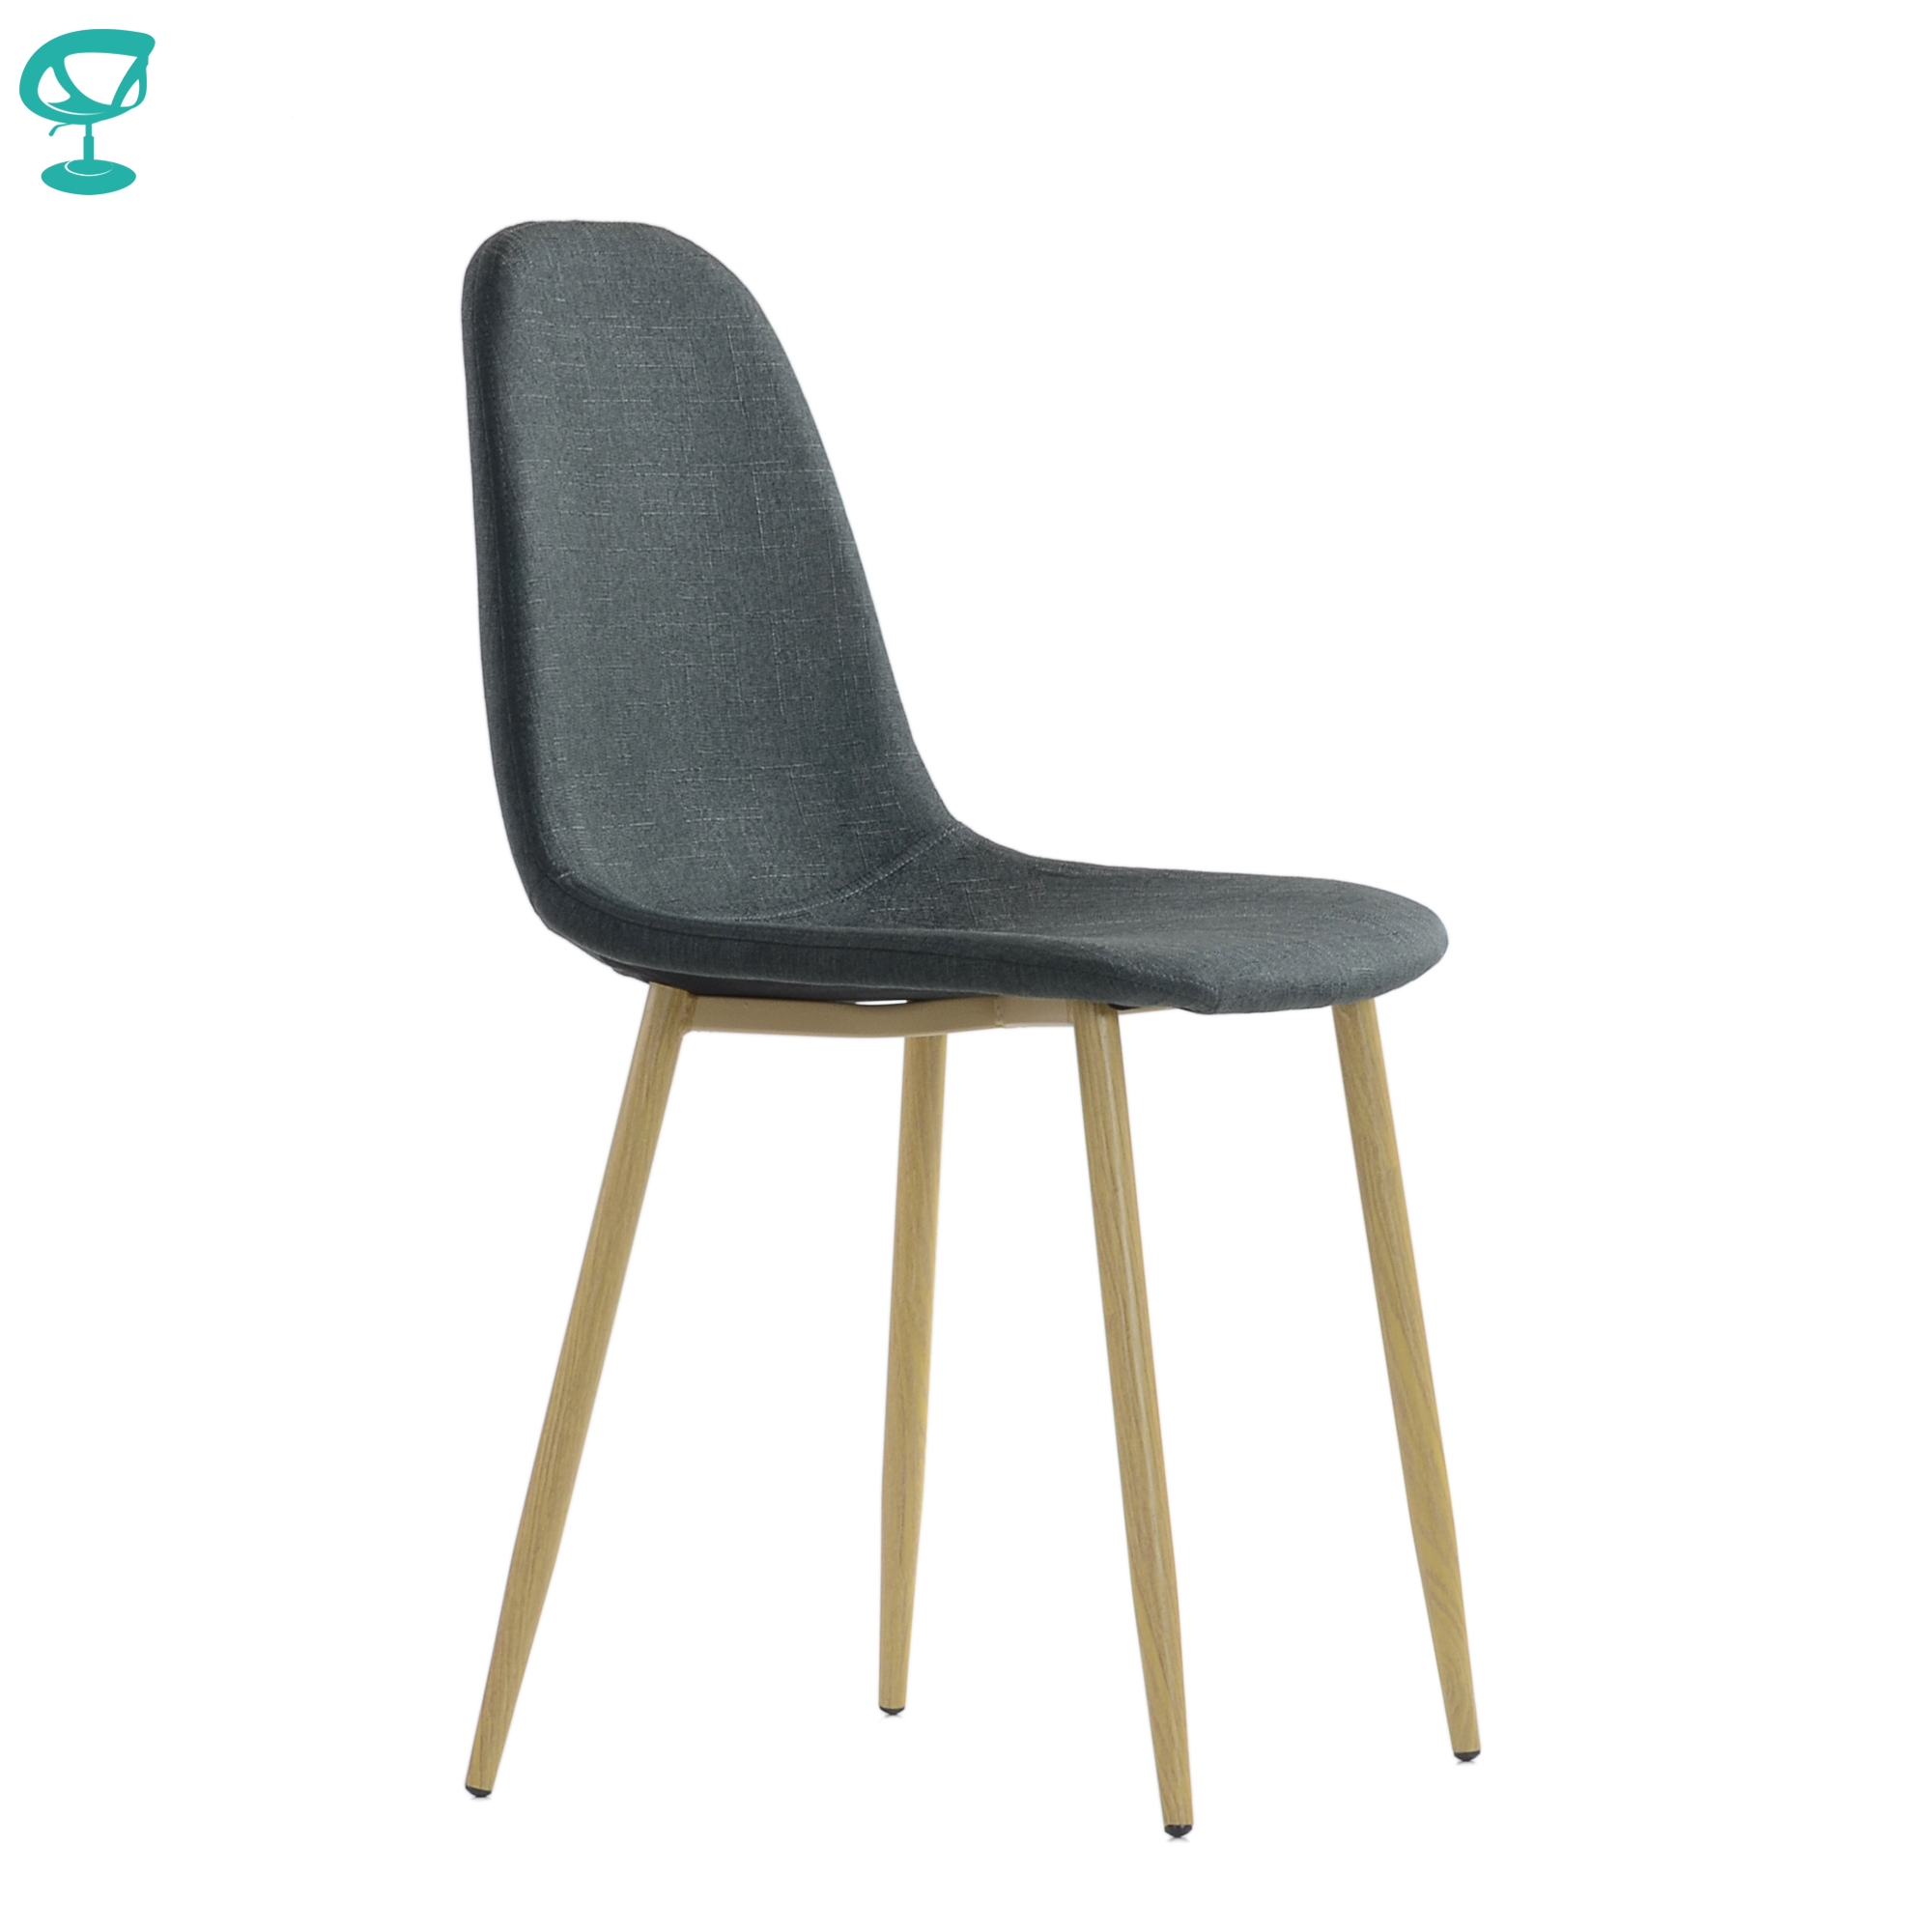 95744 Barneo S-15 Kitchen Chair Legs Metal Seat Fabric Chair For Living Room Chair Dining Chair Table Chair Furniture For Kitchen